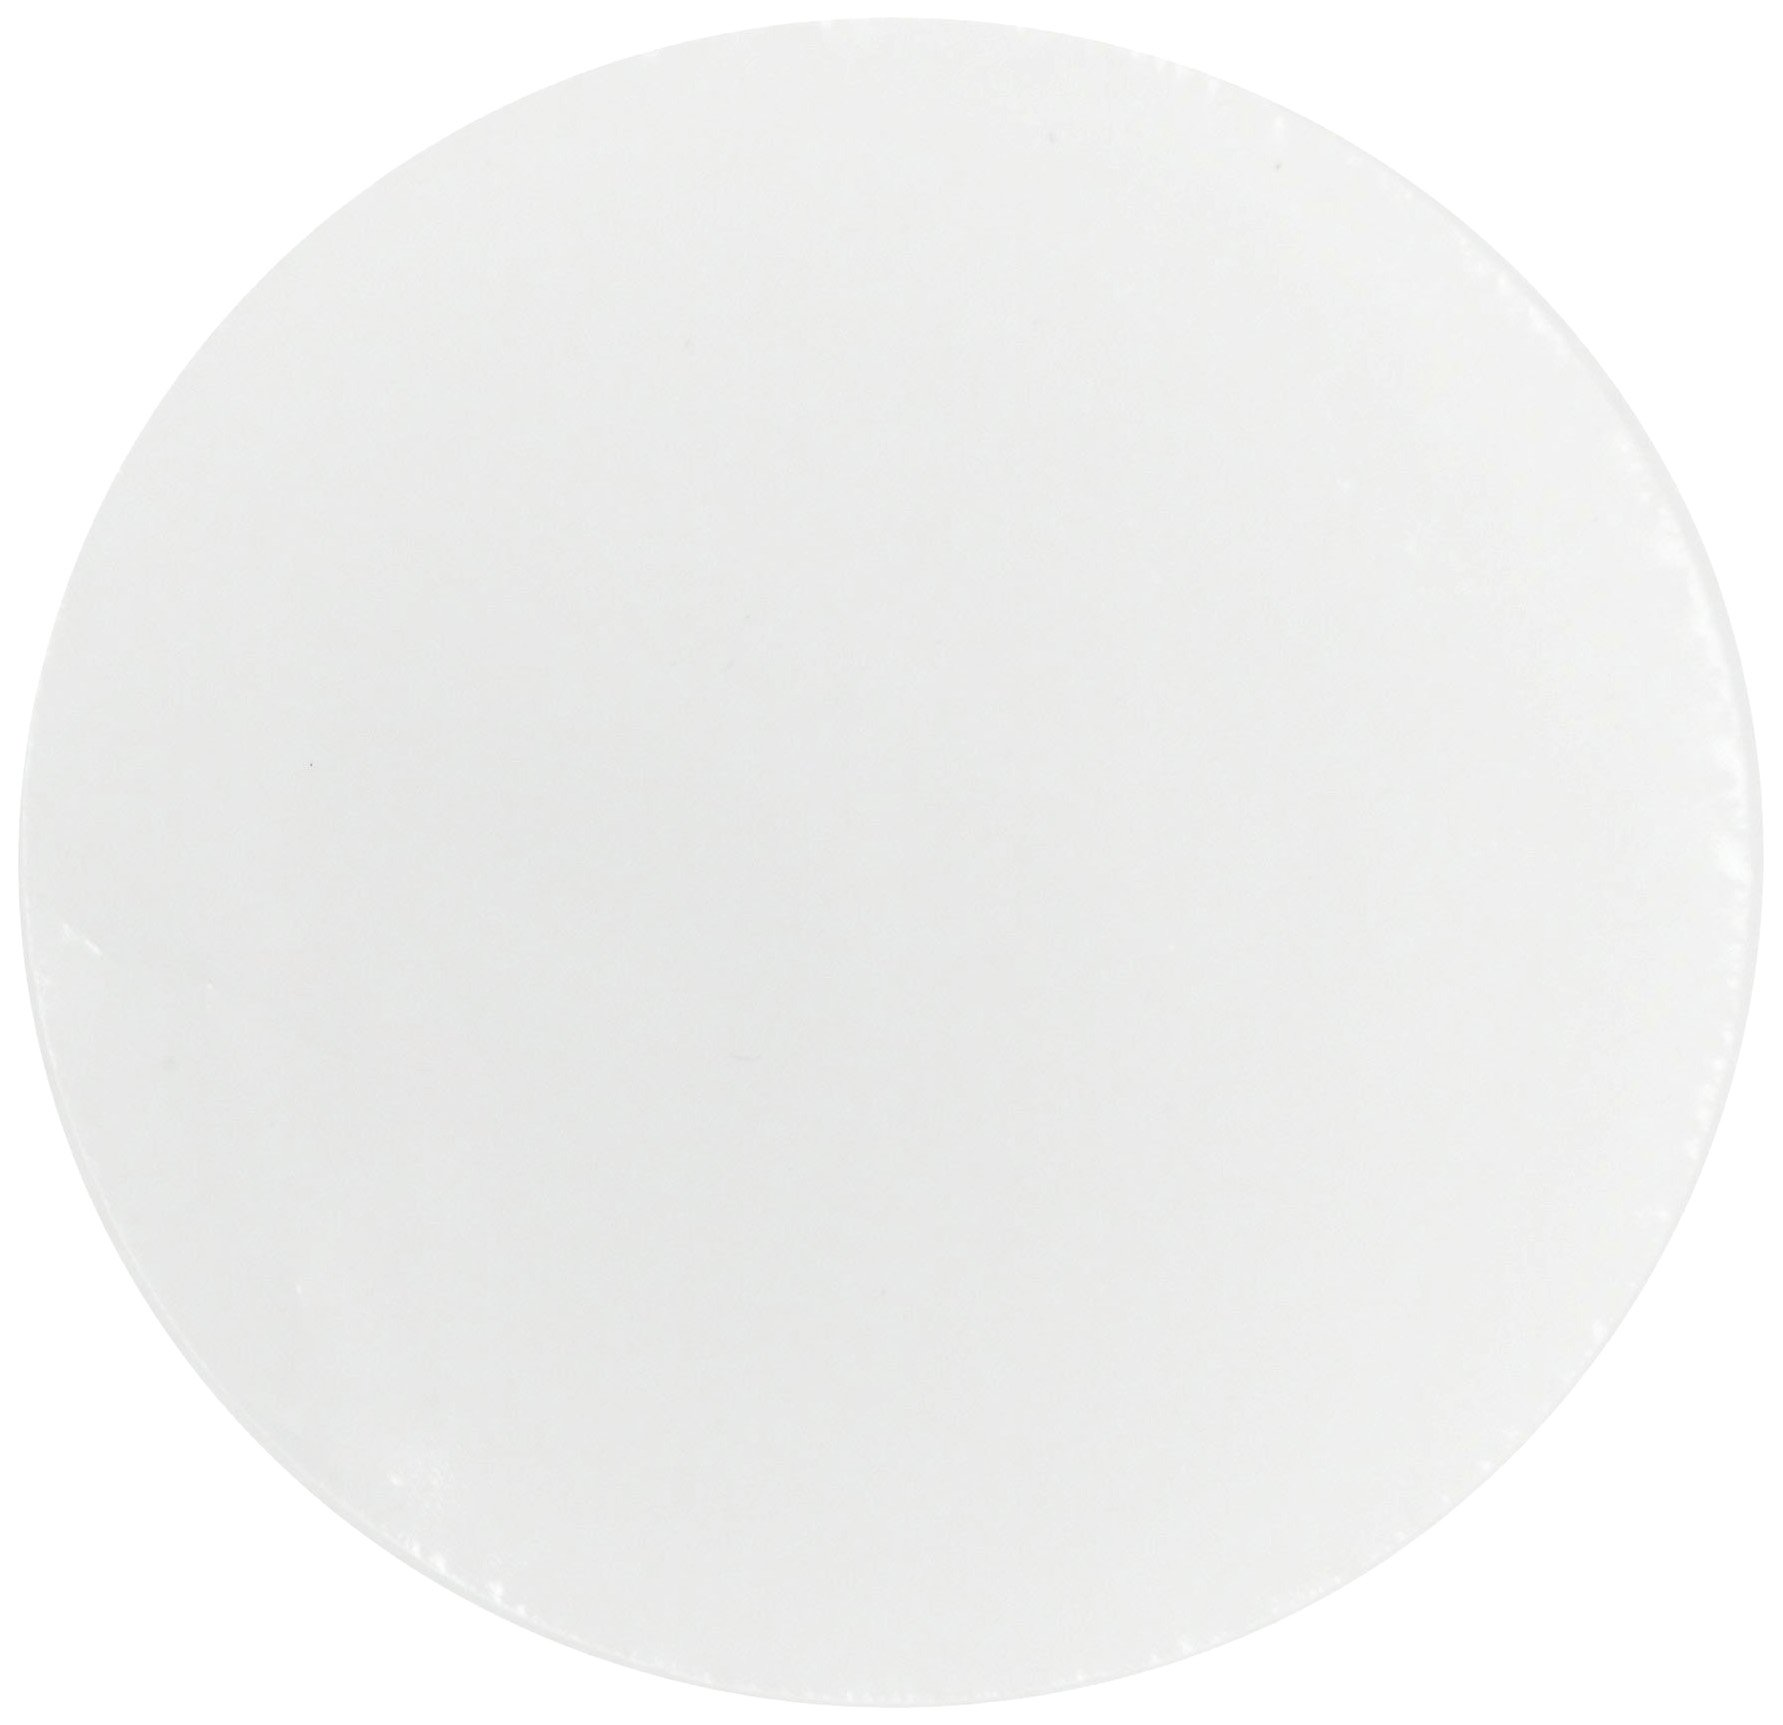 Whatman 110401 Polycarbonate Nuclepore Track-Etched Membrane Filters, 13mm Diameter, 0.015 Micron (Pack of 100)